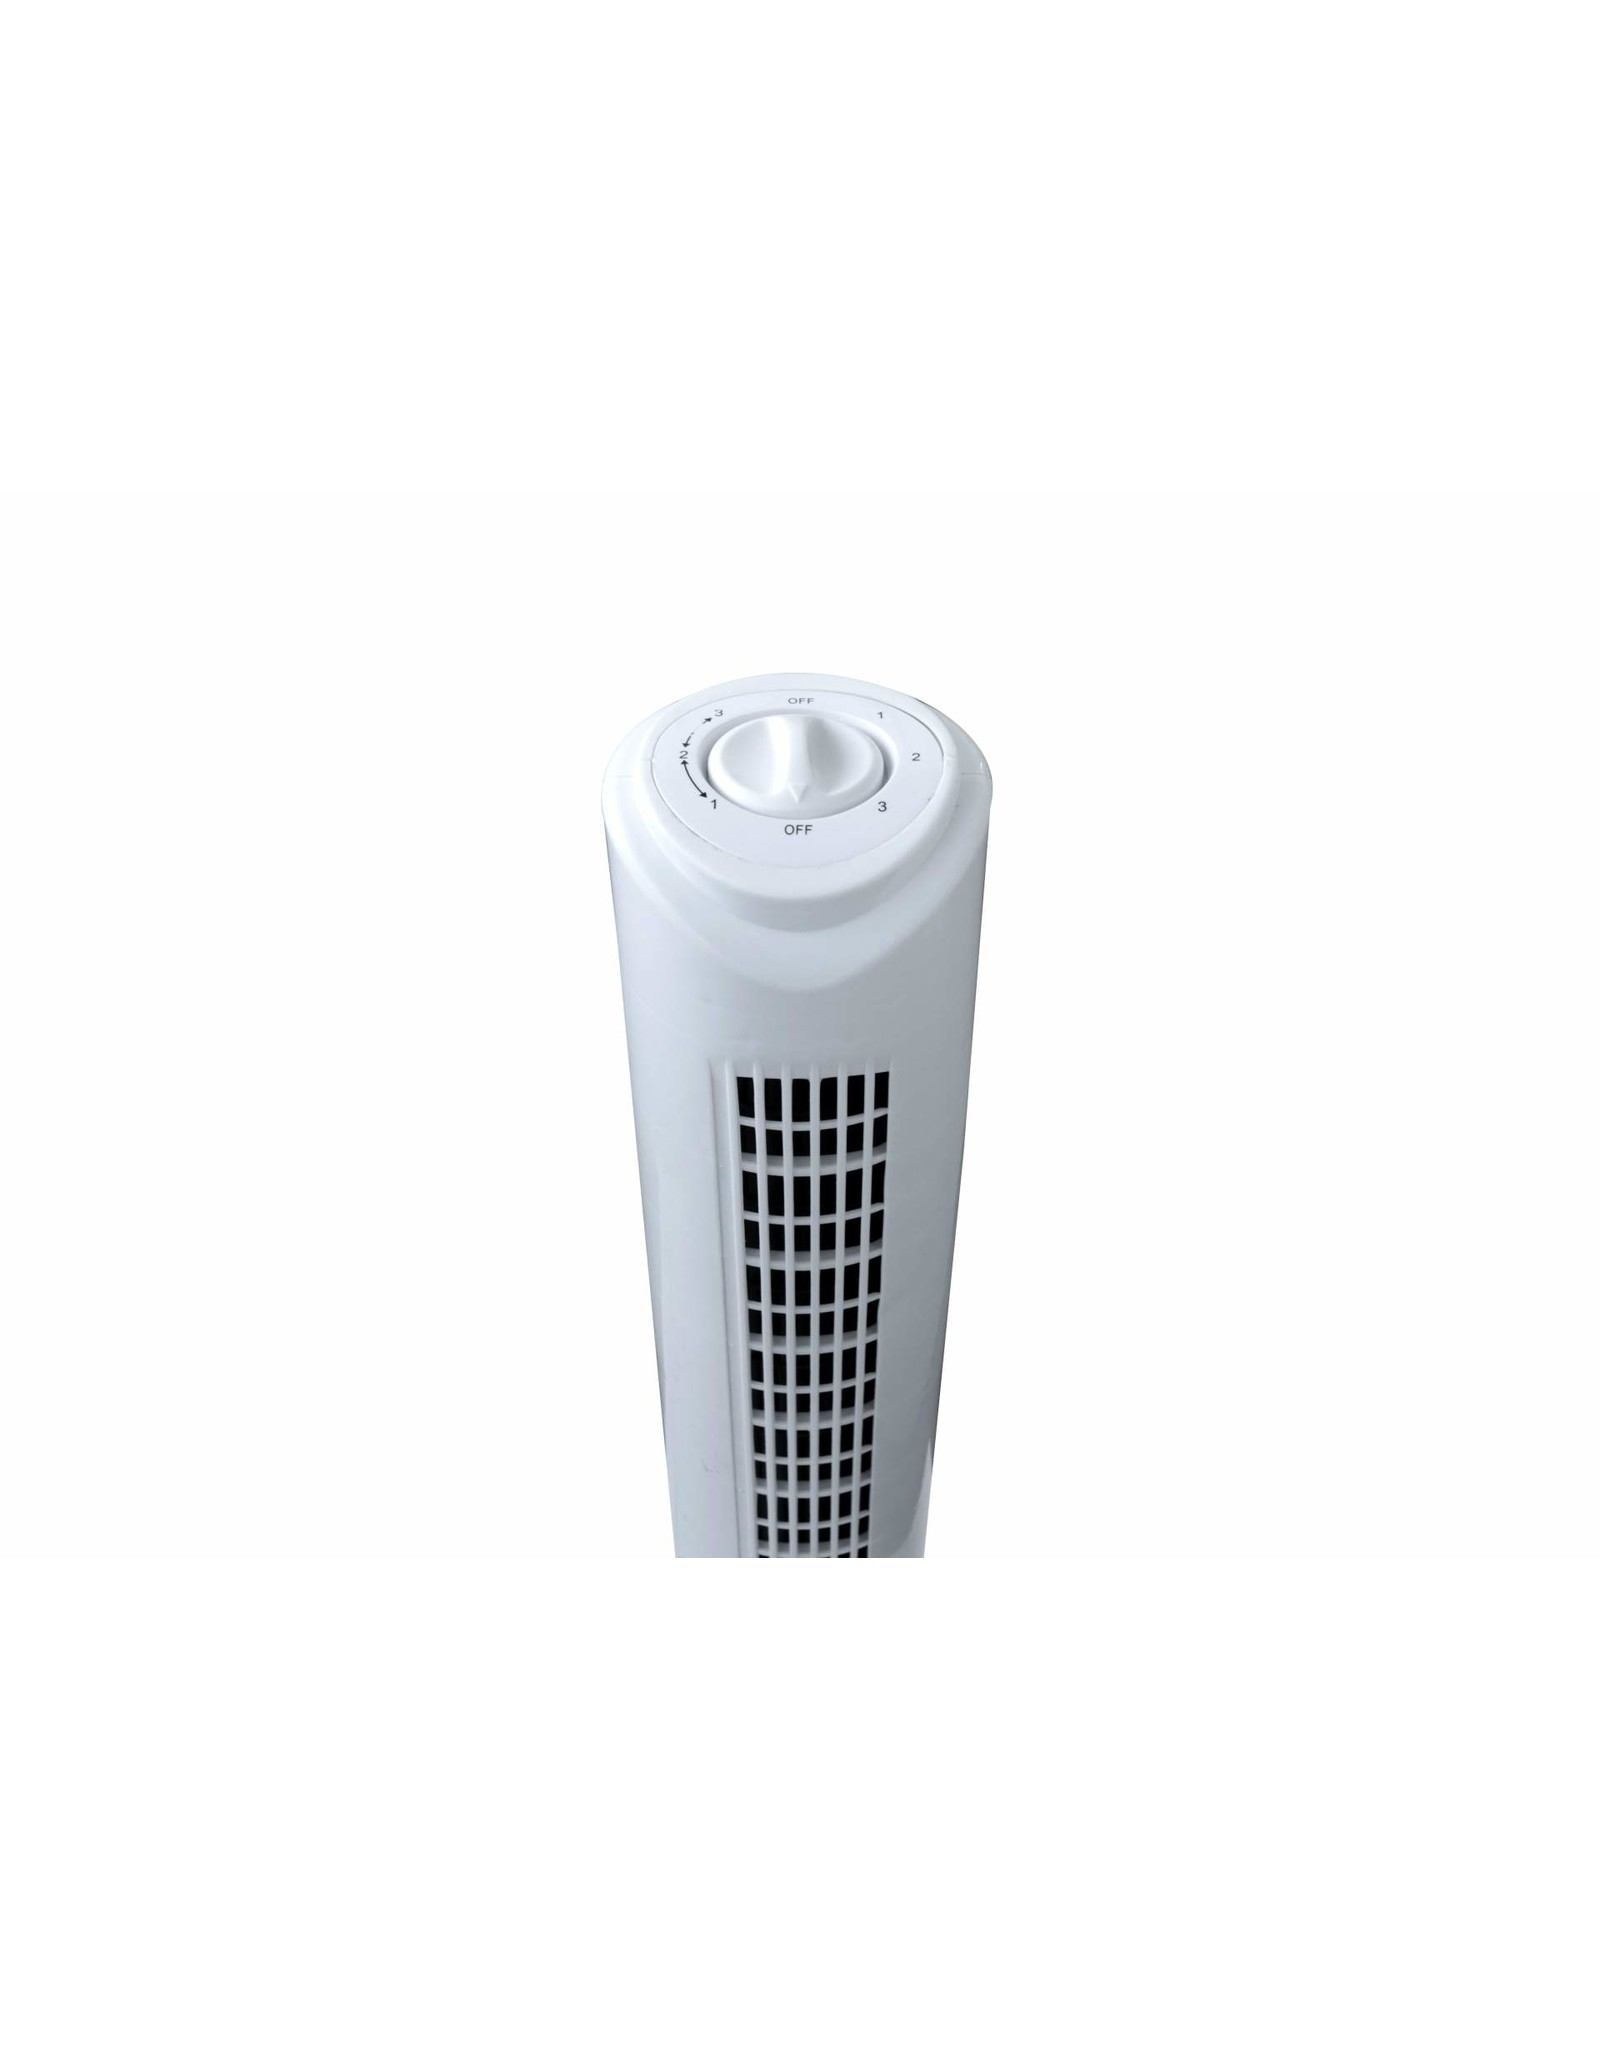 Tower fan - 79 cm height - 3 modes - white